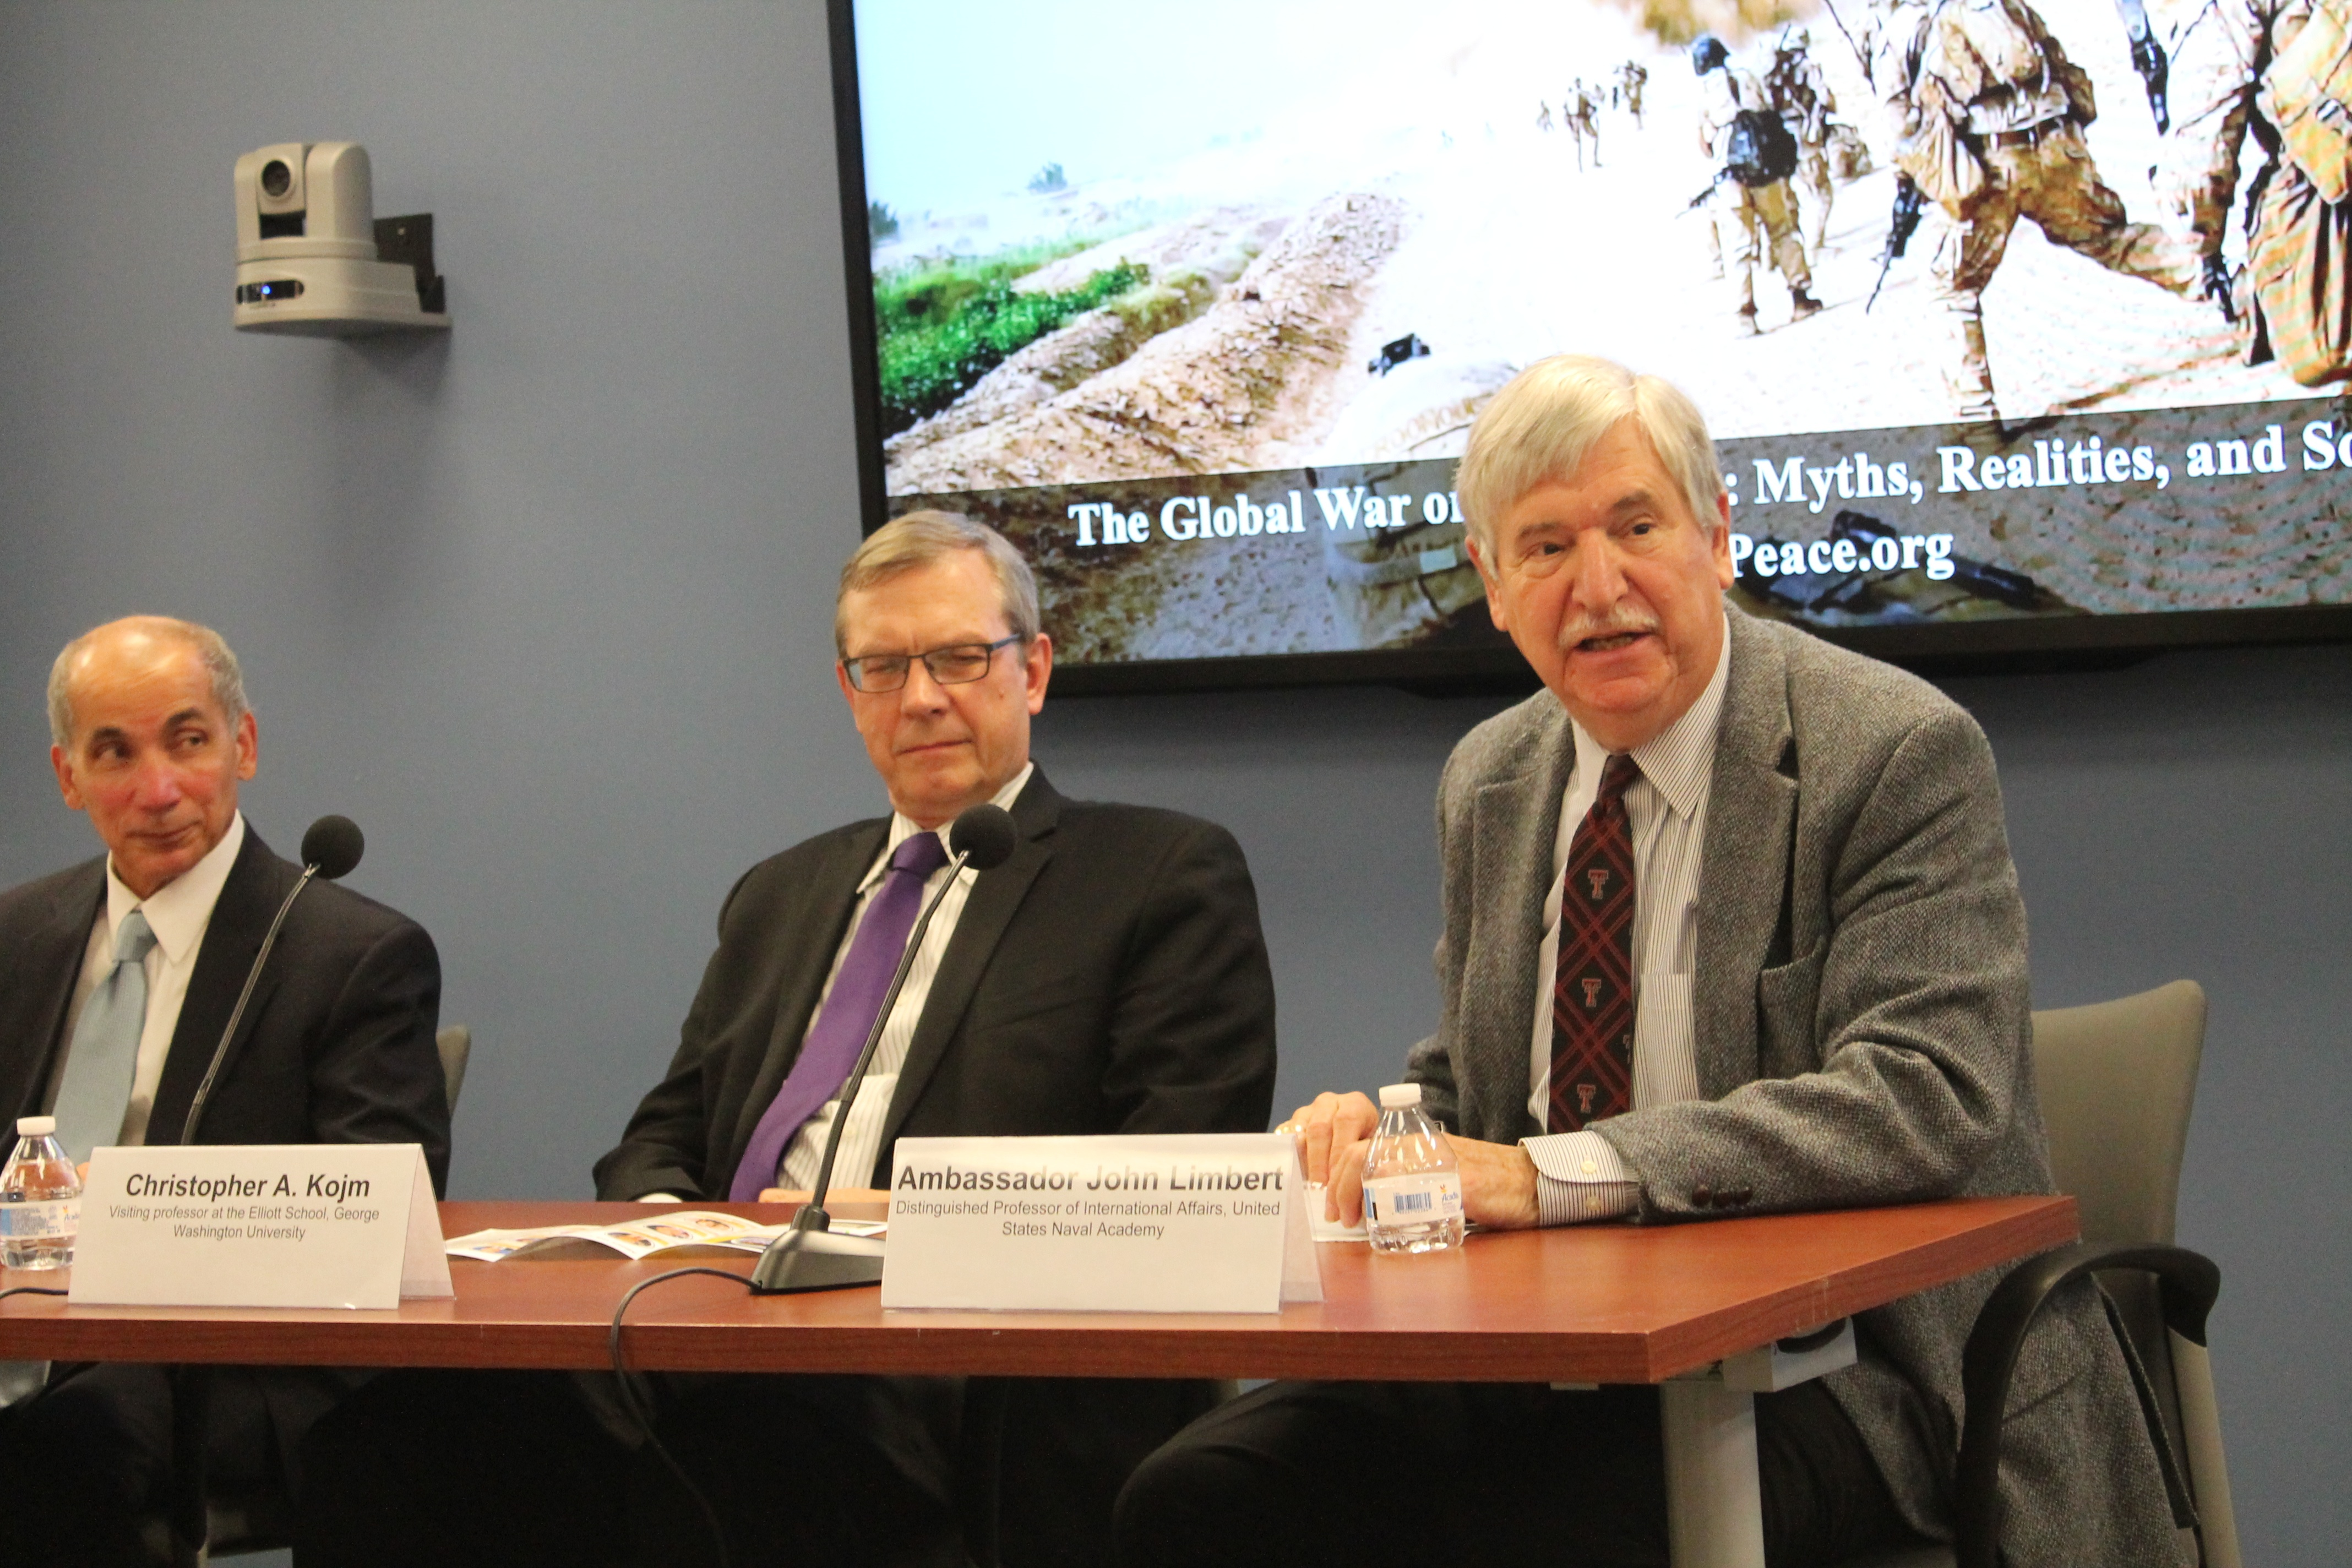 IMG 2851 1 - The Global War on Terrorism: Myths, Realities & Solutions